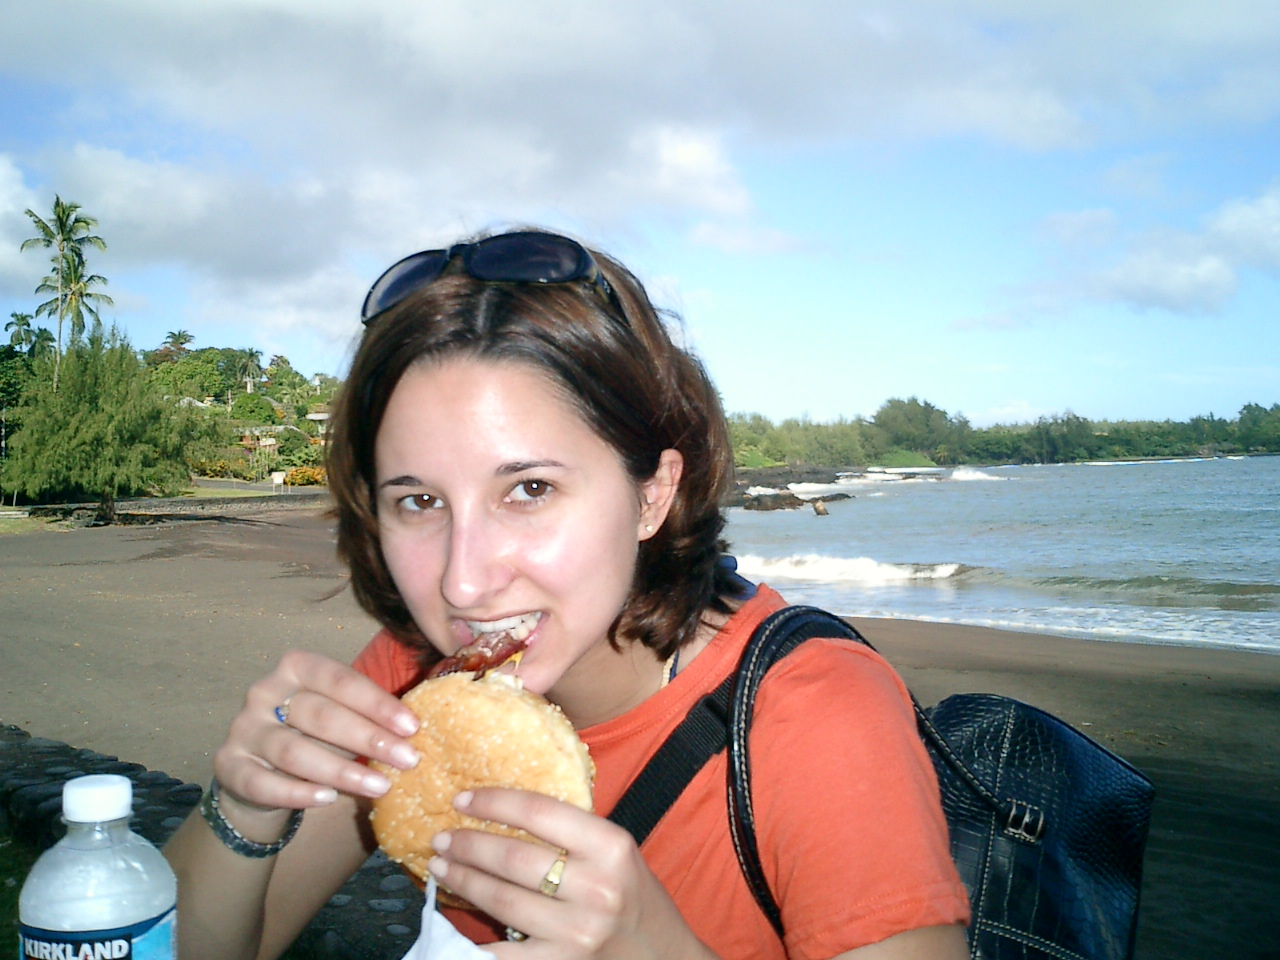 The Road to Hana ends with a tasty breakfast sandwich